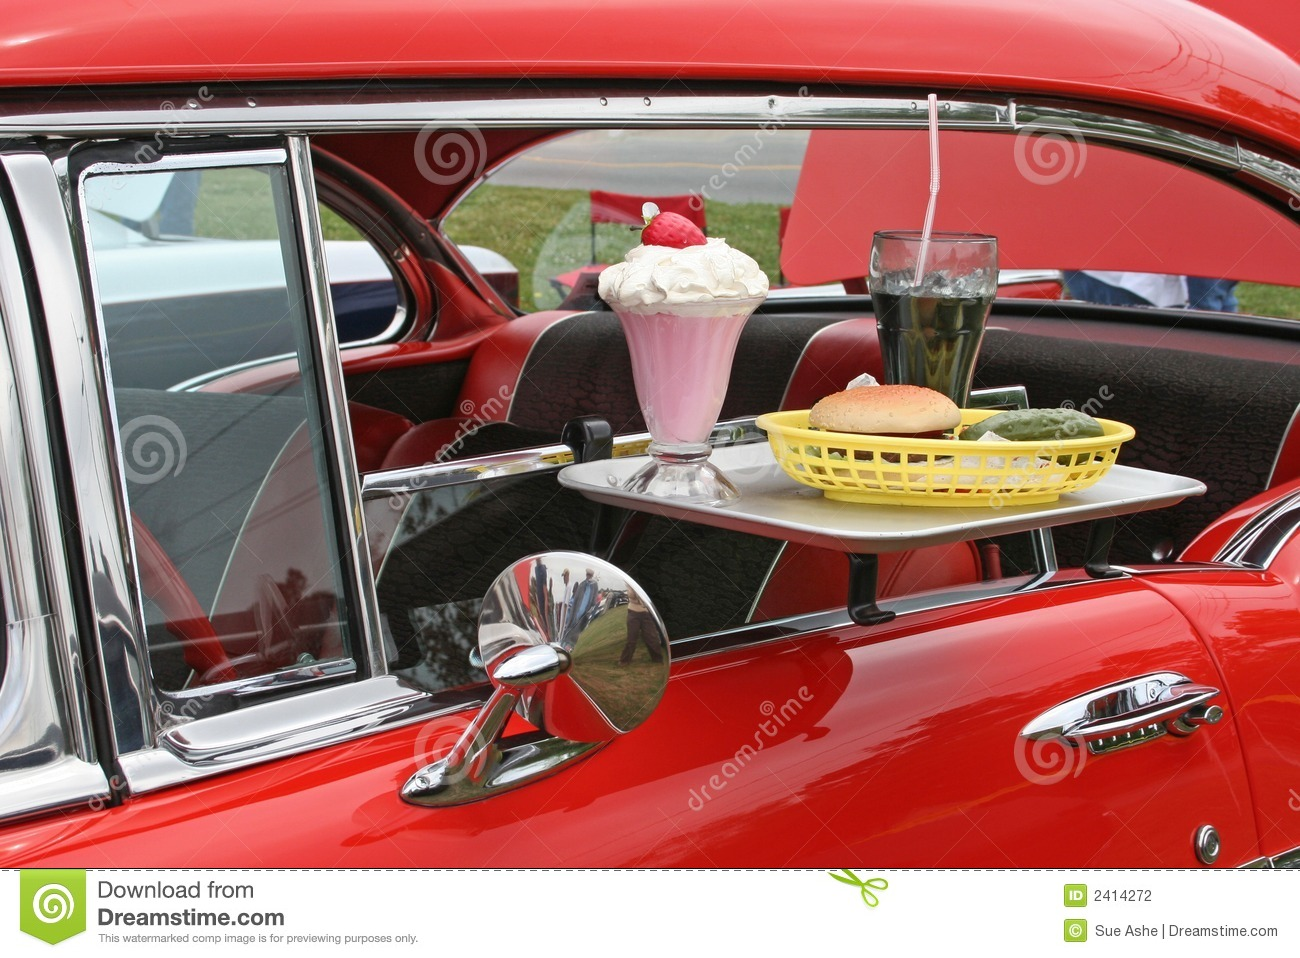 Car Hop Tray Fun Food http://www.dreamstime.com/stock-photography-car-hop-food-antique-car-image2414272